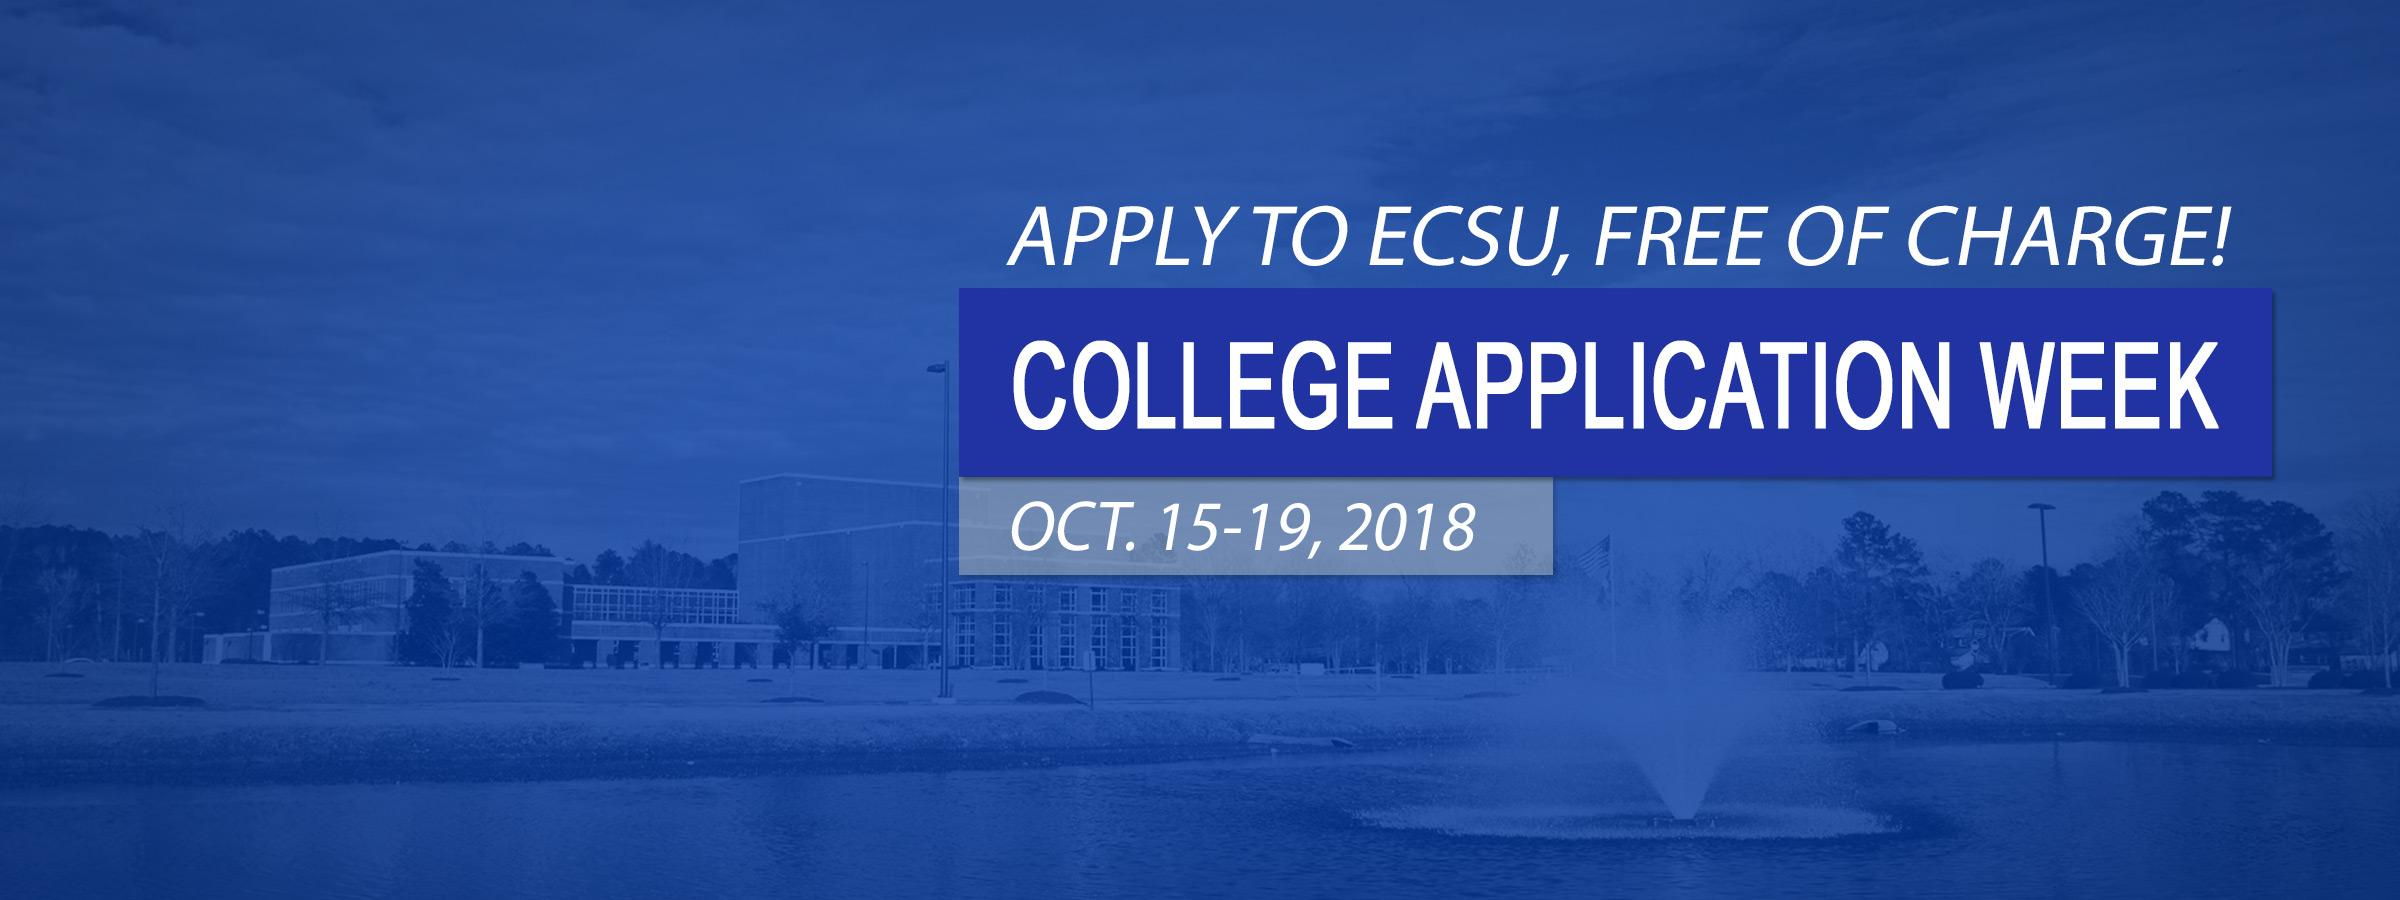 Apply to ECSU - For Free!